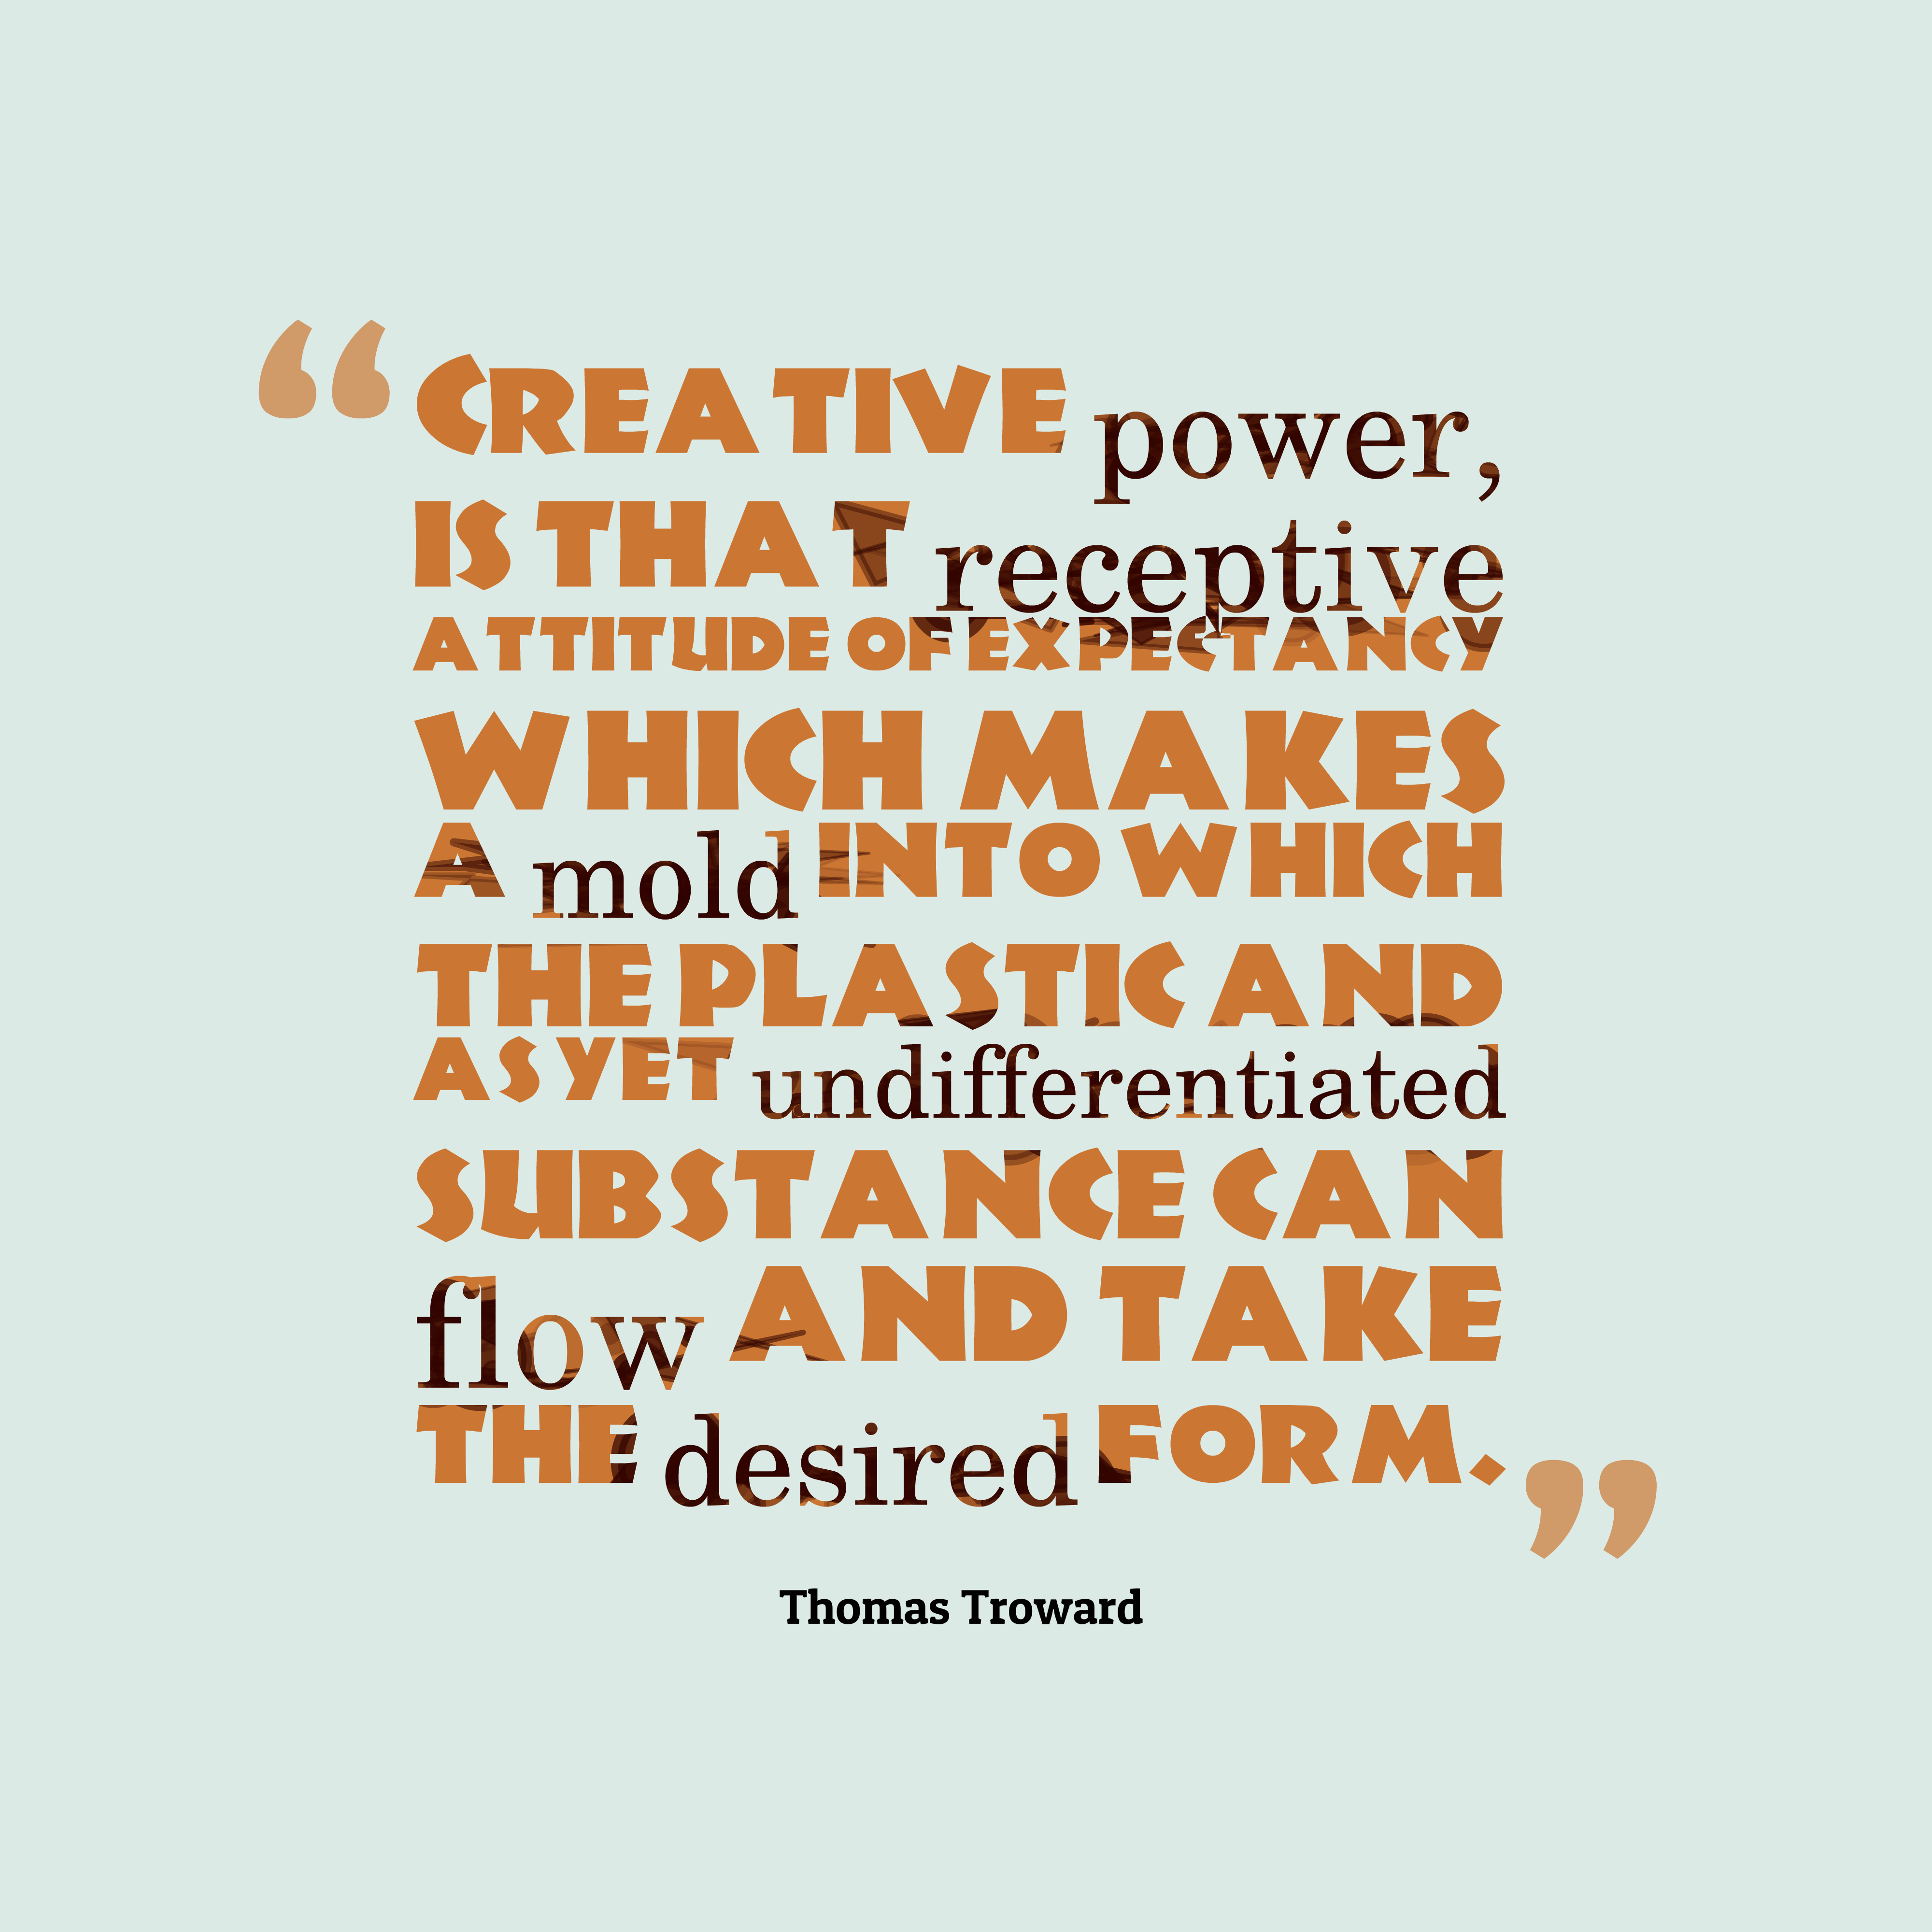 Quotes image of Creative power, is that receptive attitude of expectancy which makes a mold into which the plastic and as yet undifferentiated substance can flow and take the desired form.